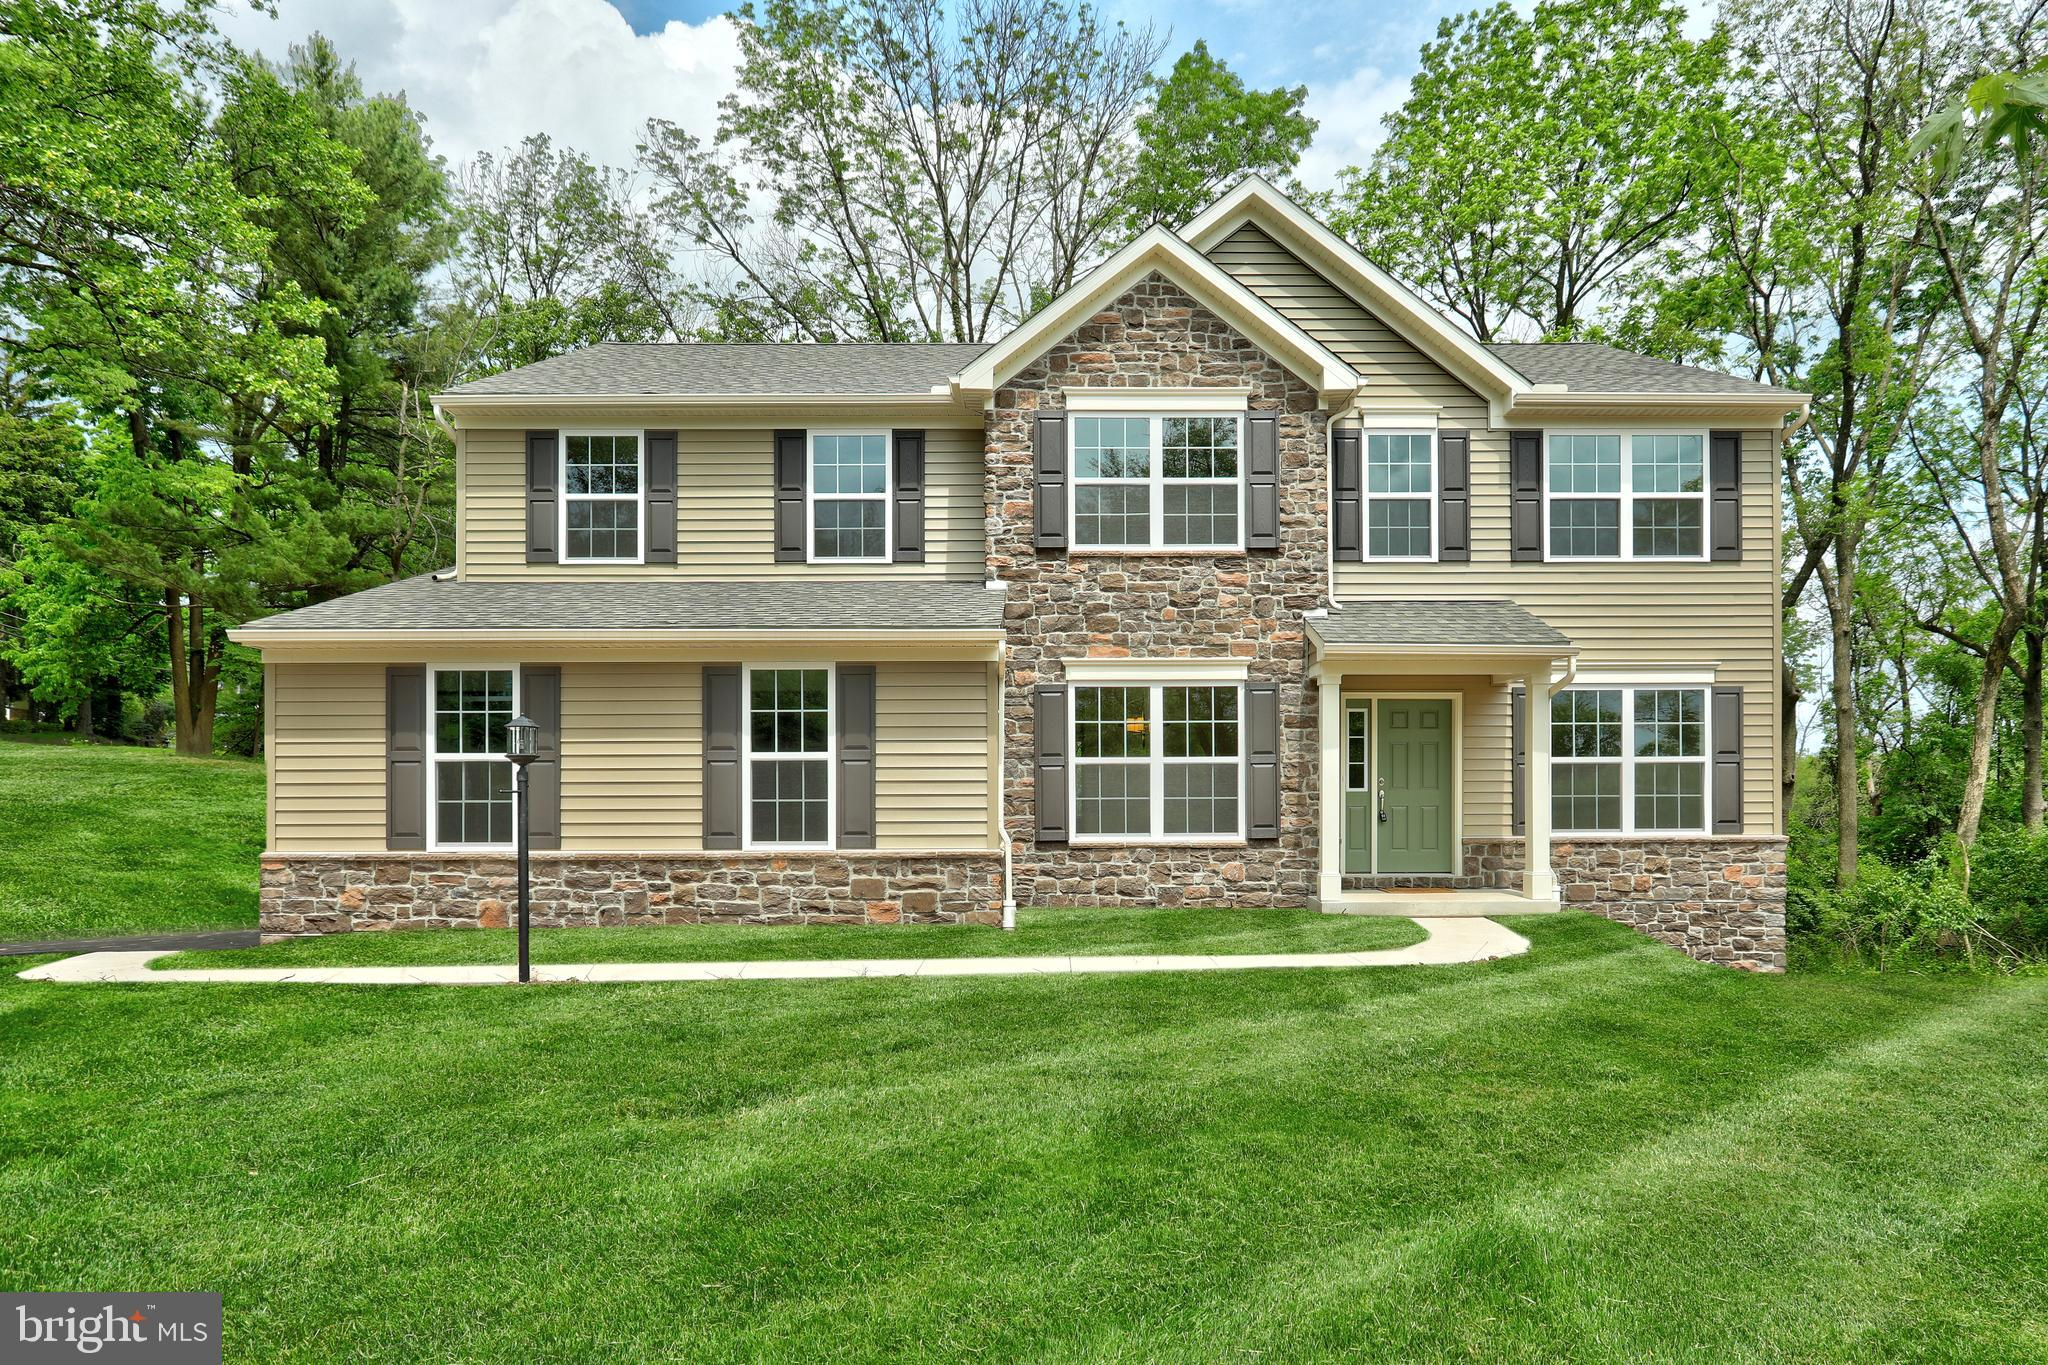 2580 WELSH ROAD, MOHNTON, PA 19540